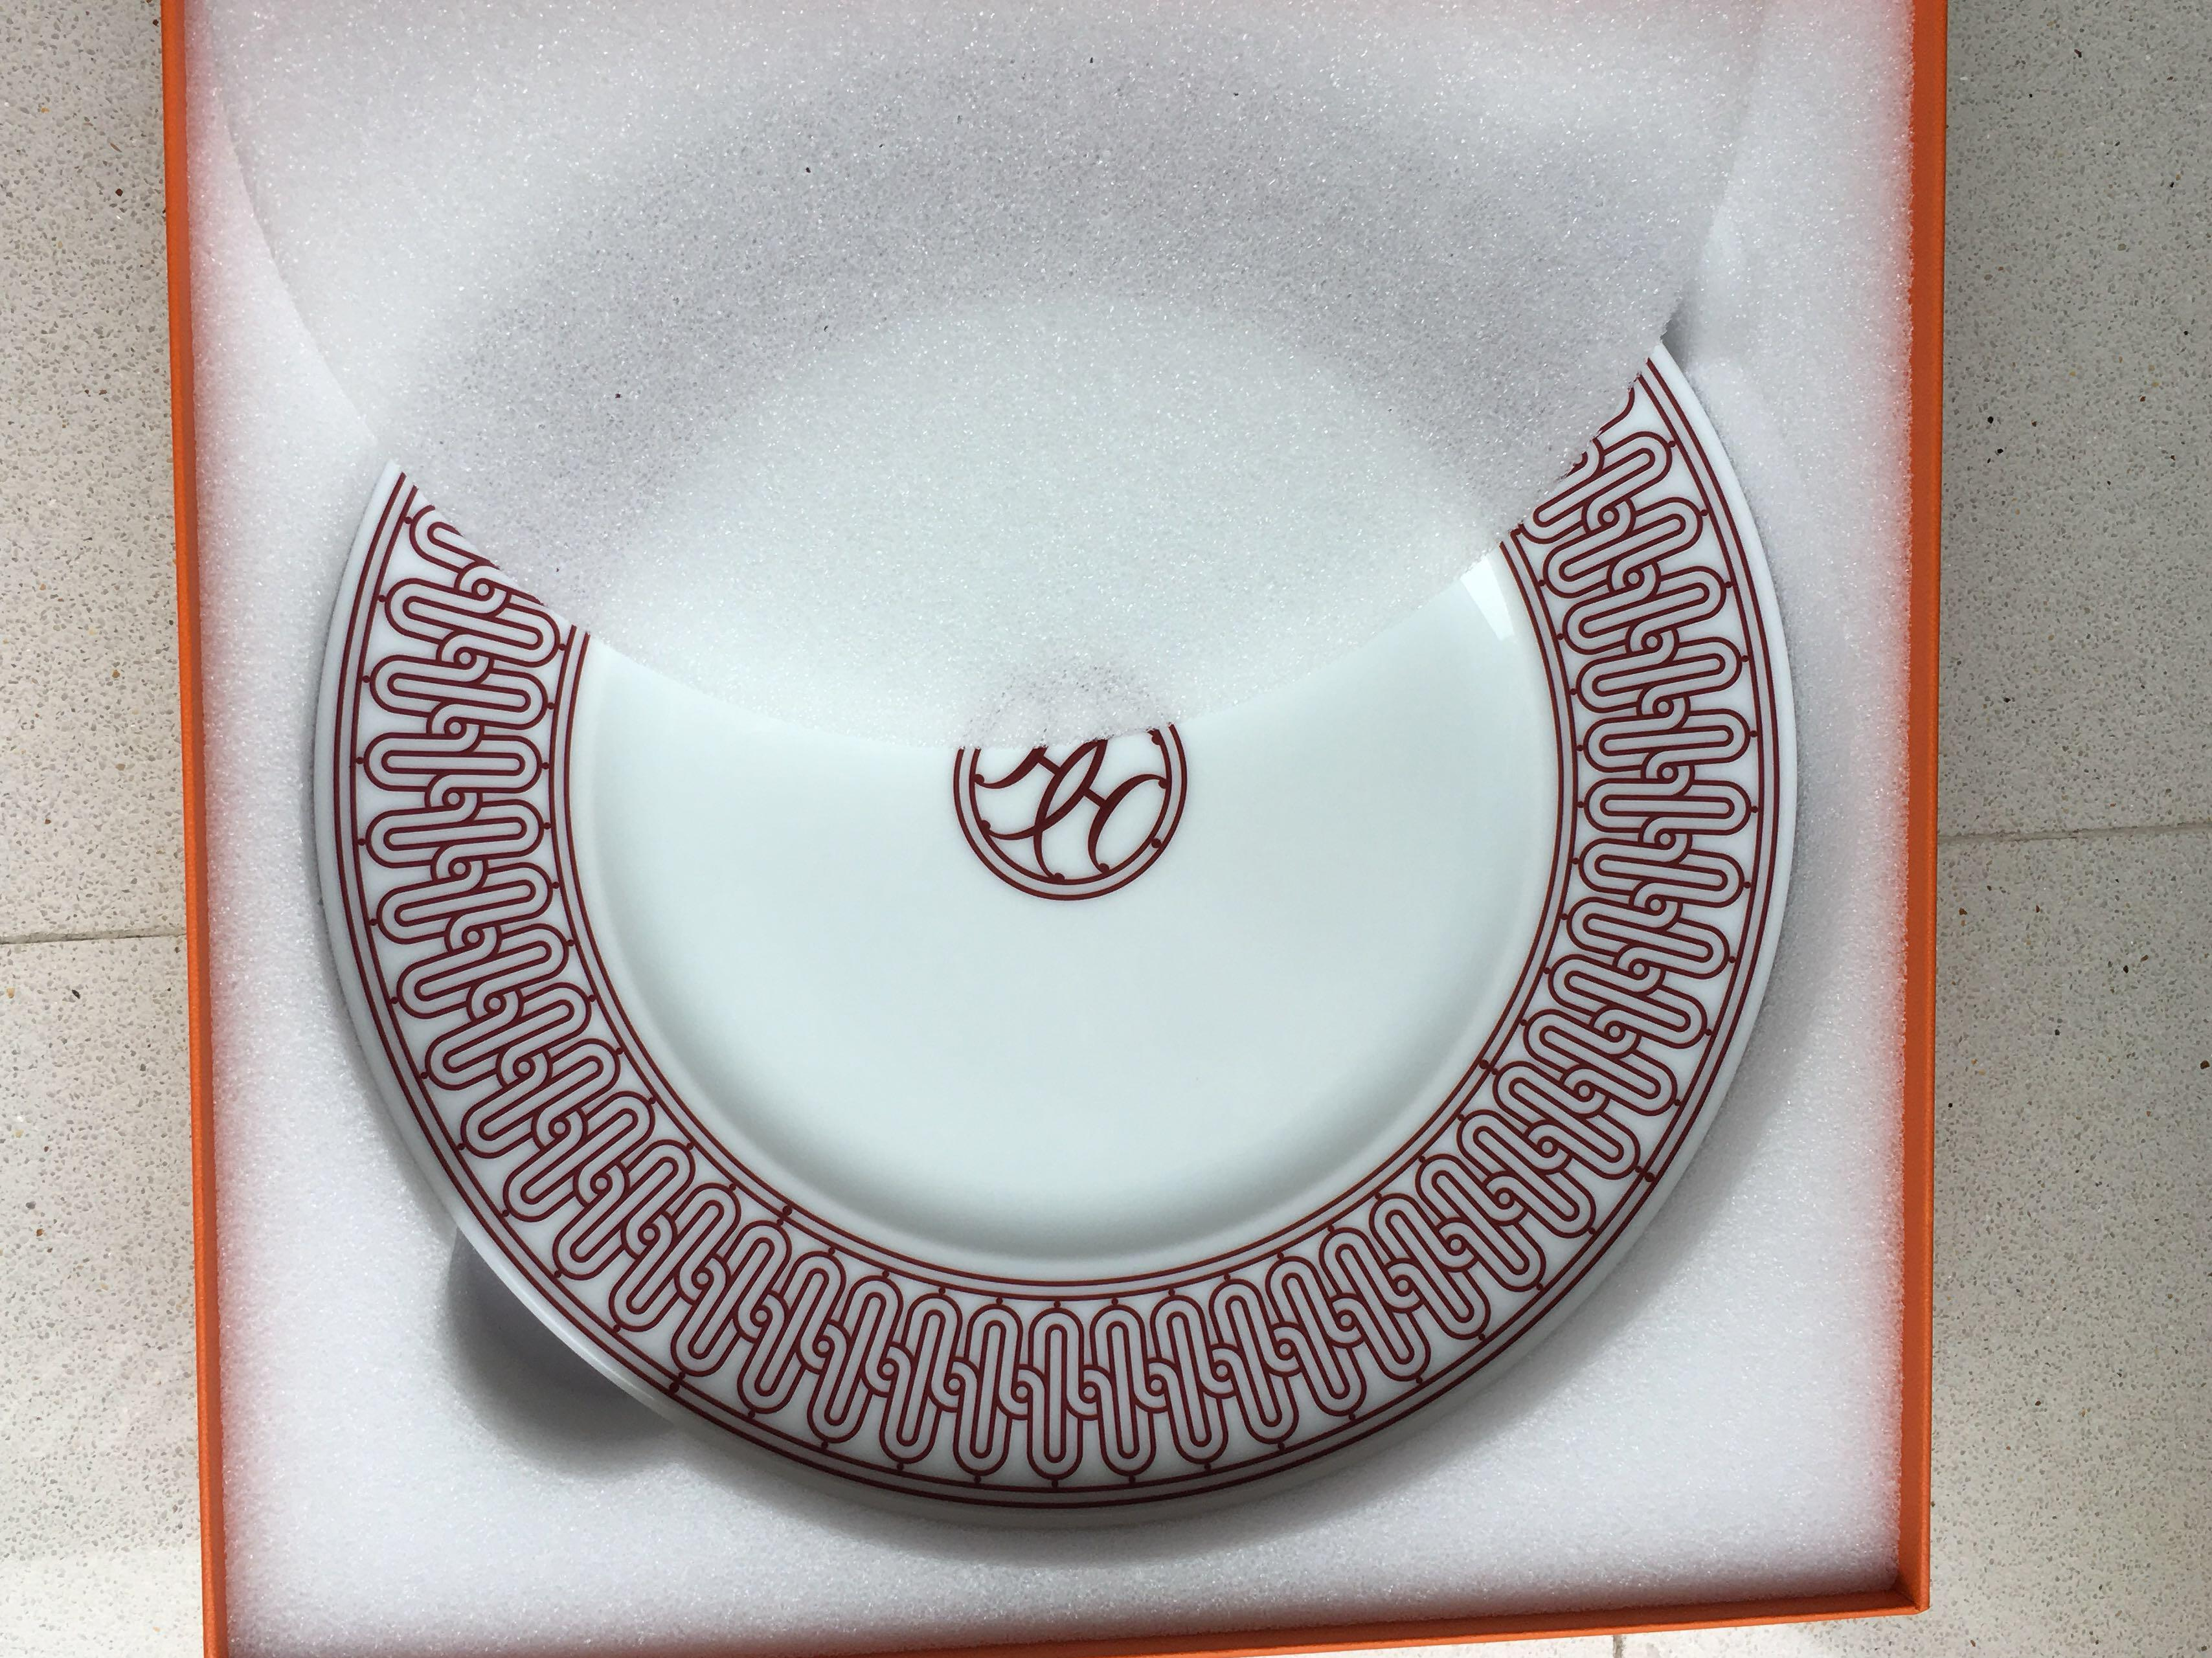 Hermes Plates (2), Home Appliances, Kitchenware on Carousell